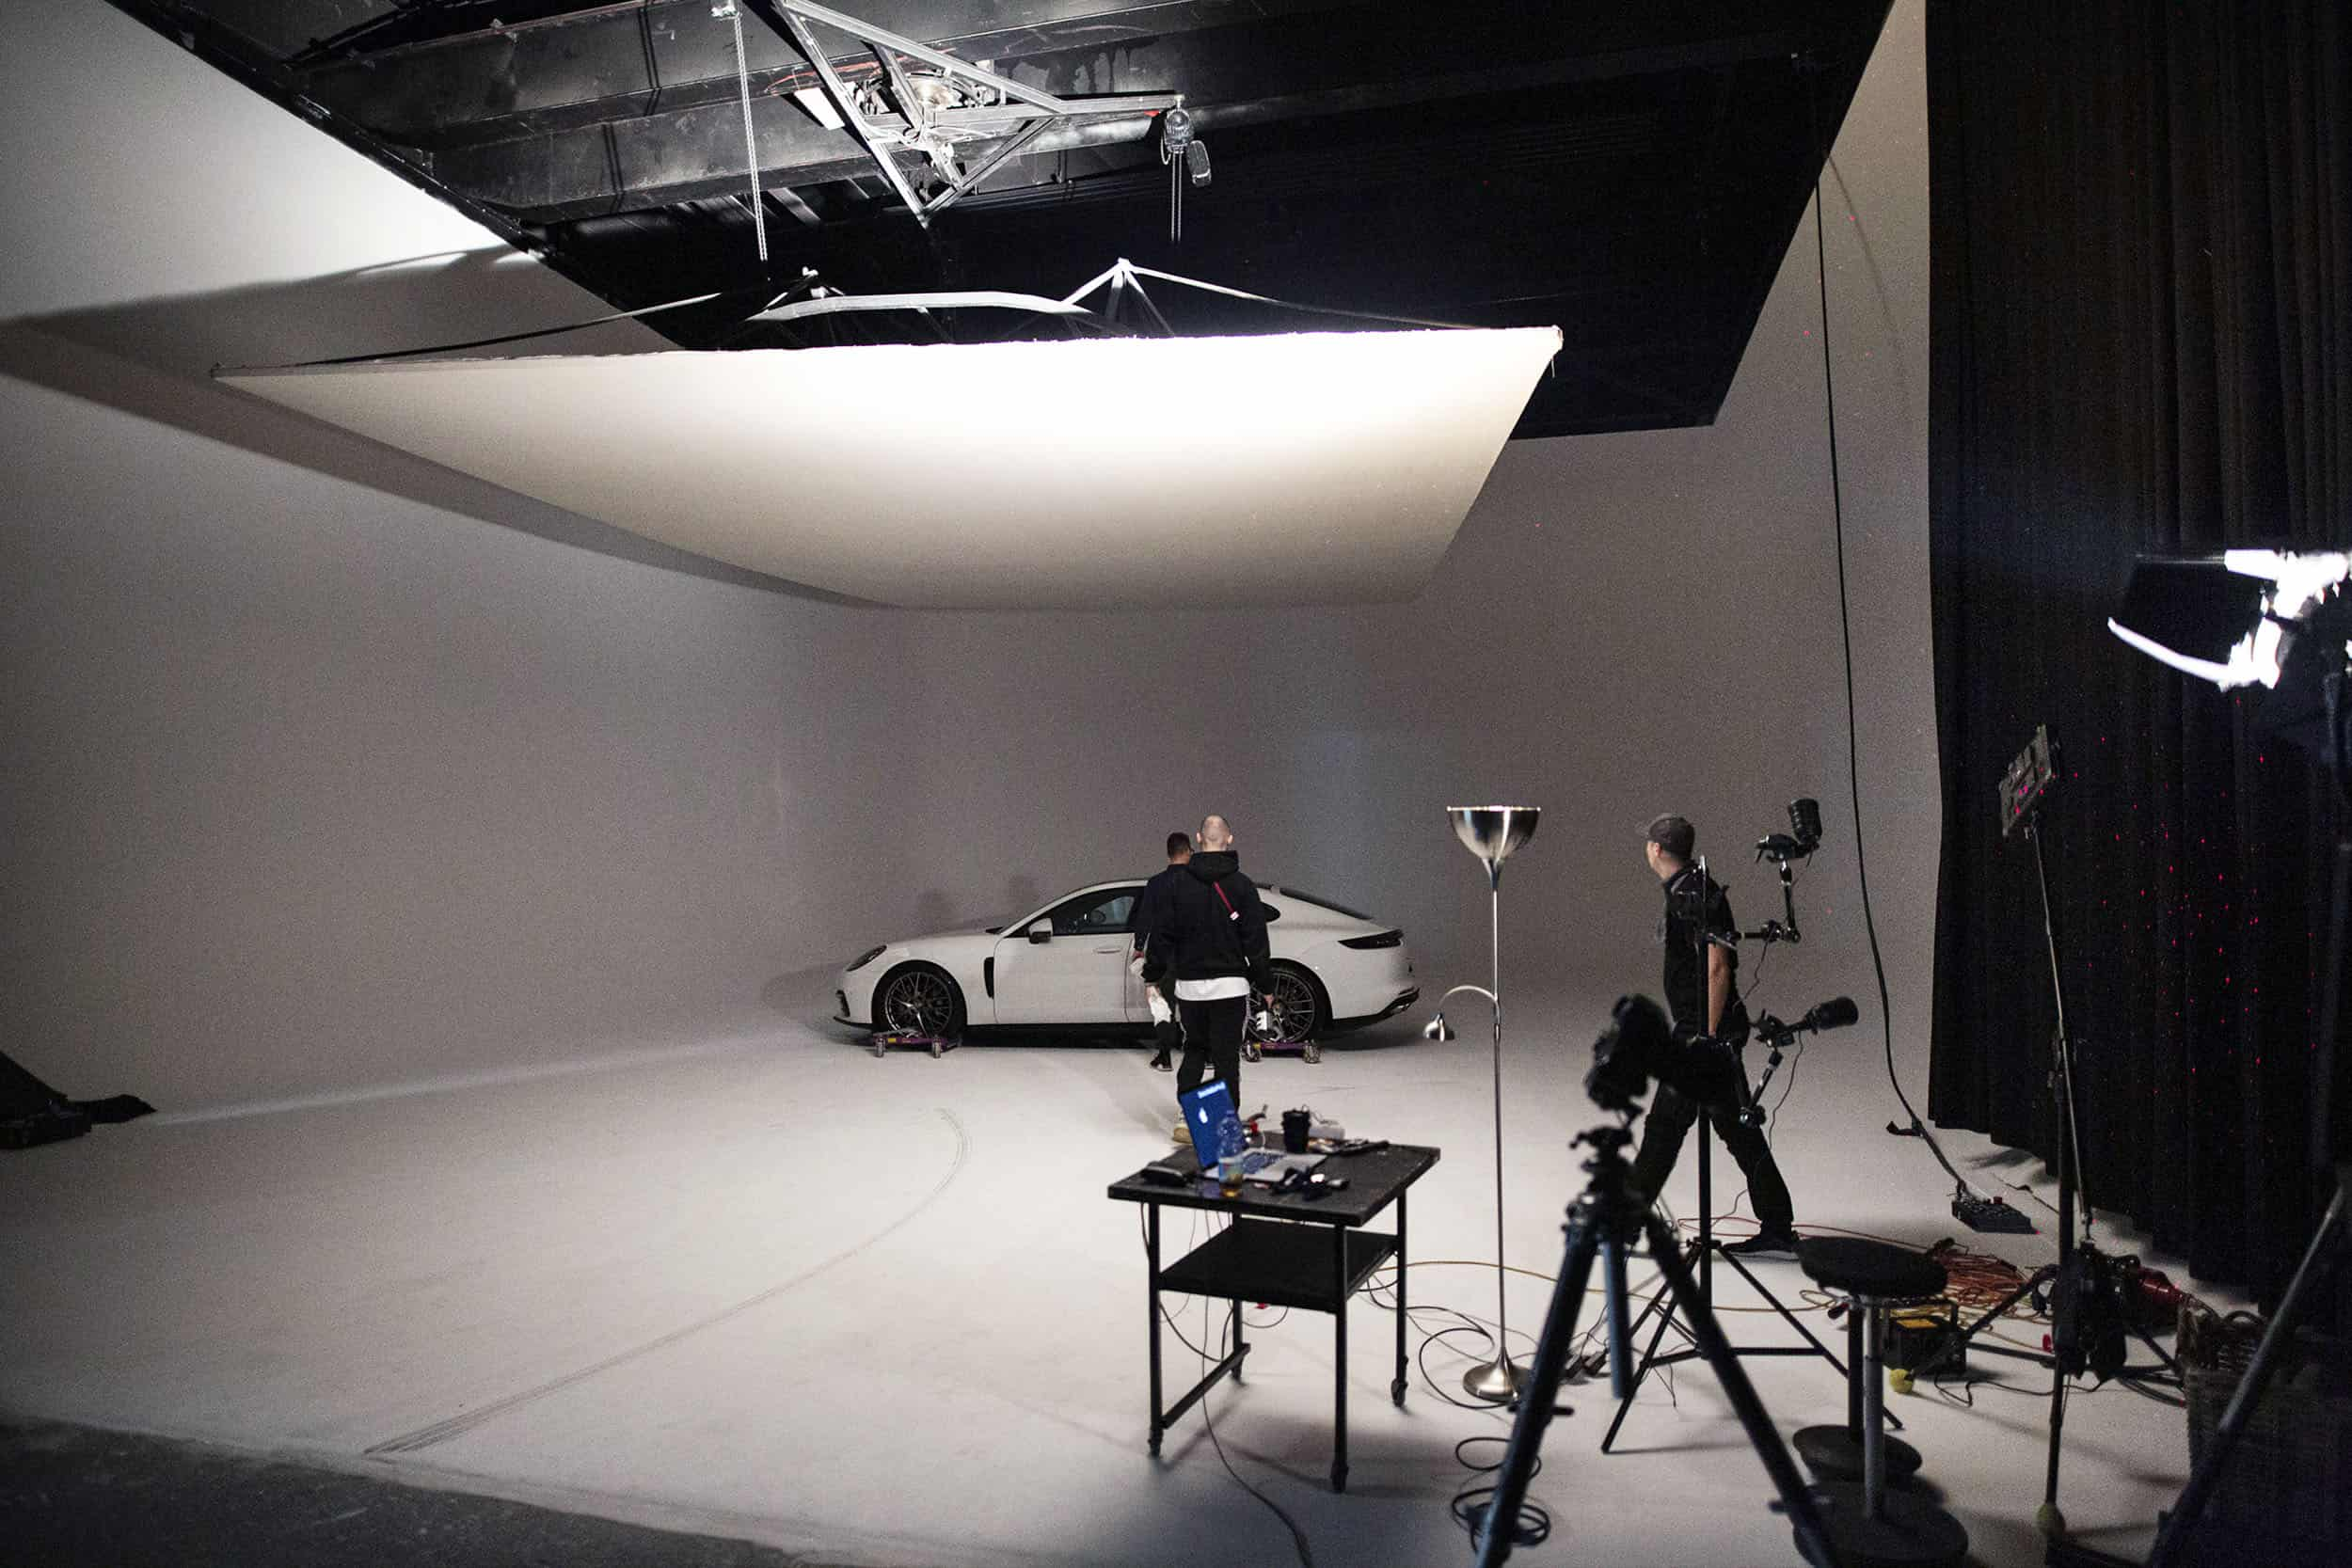 studio-ignatov-wkw-automotive-imagekampagne-makingof-02